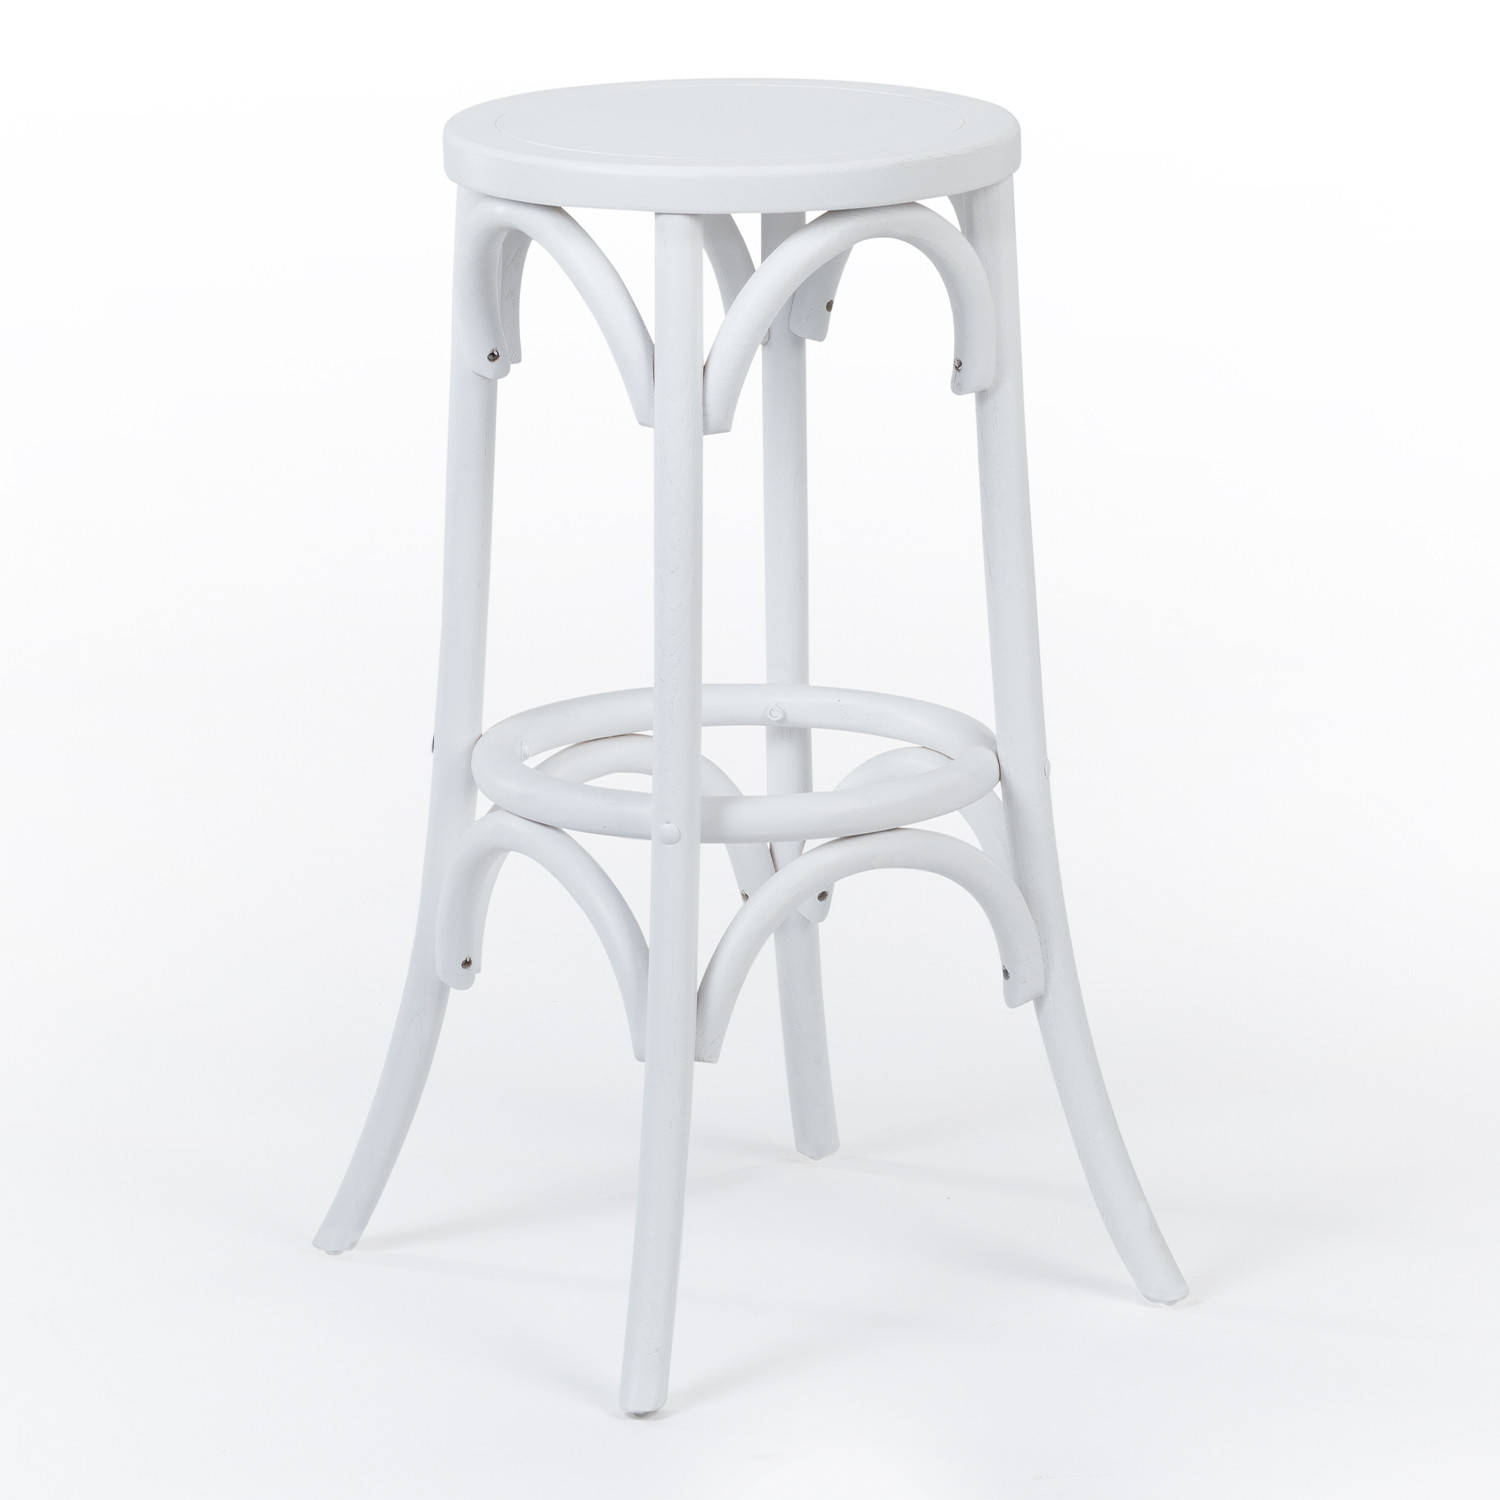 Thon Wood High Stool, gallery image 1